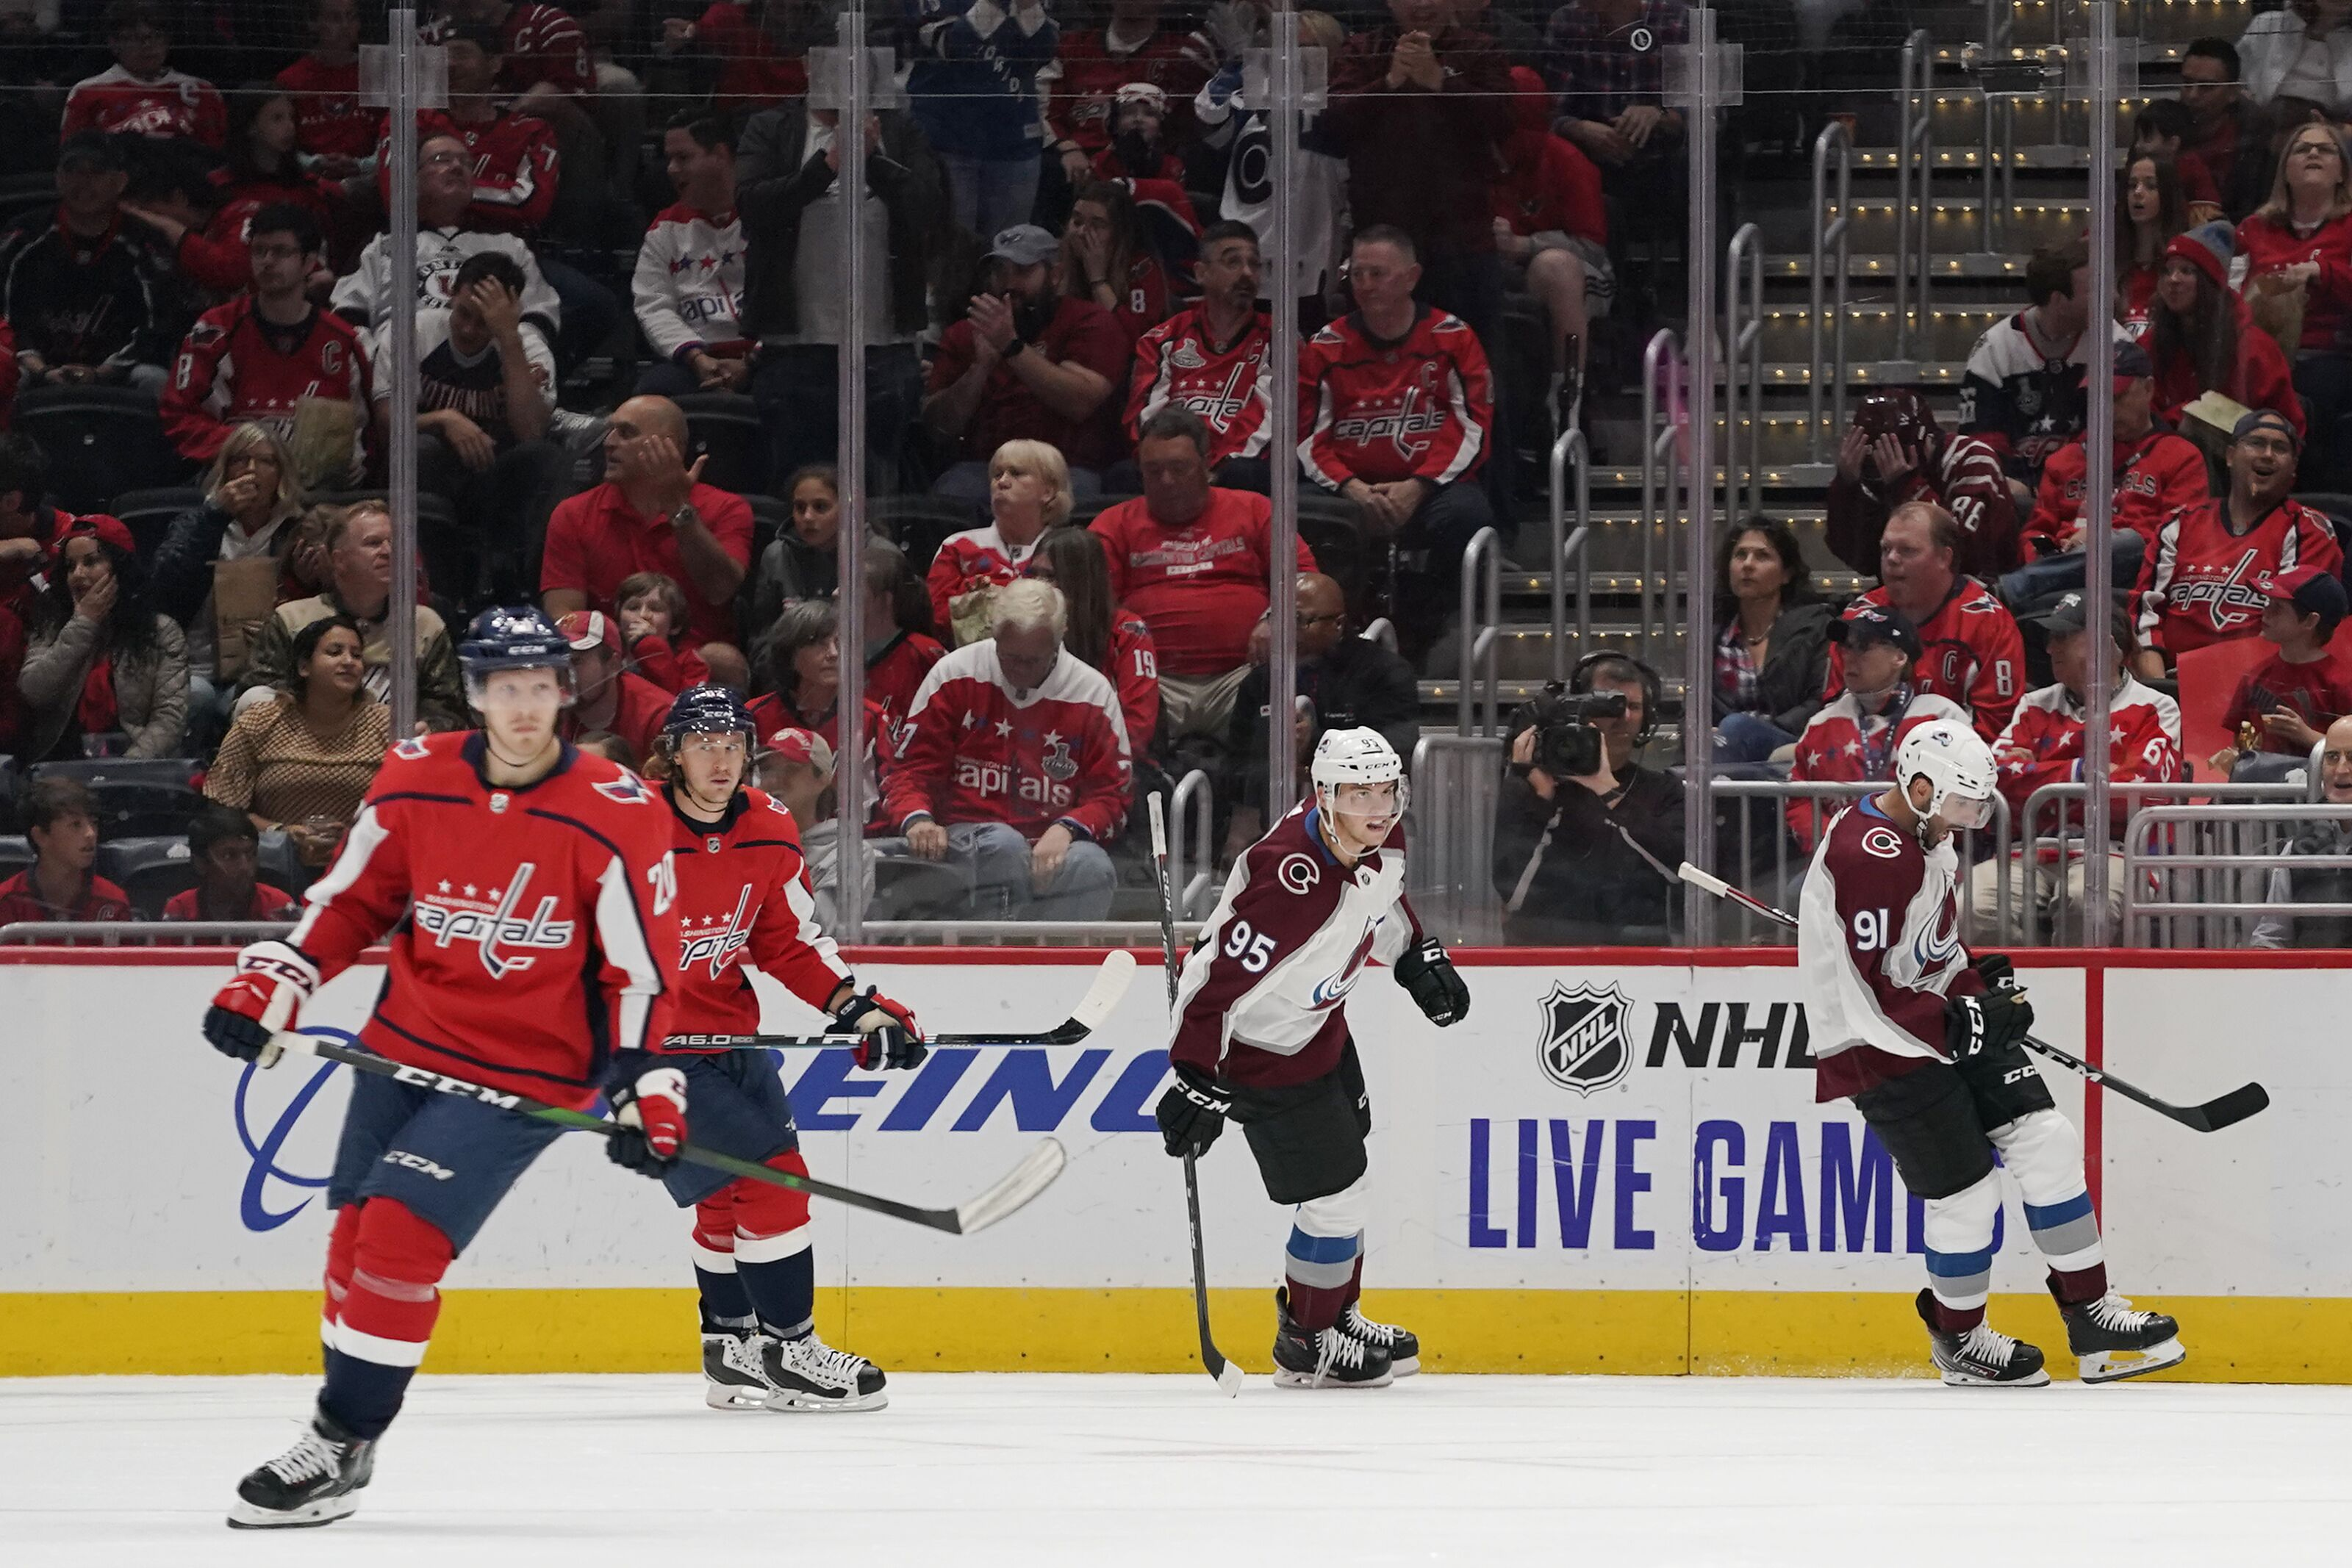 Washington Capitals can't keep up with red hot Avalanche